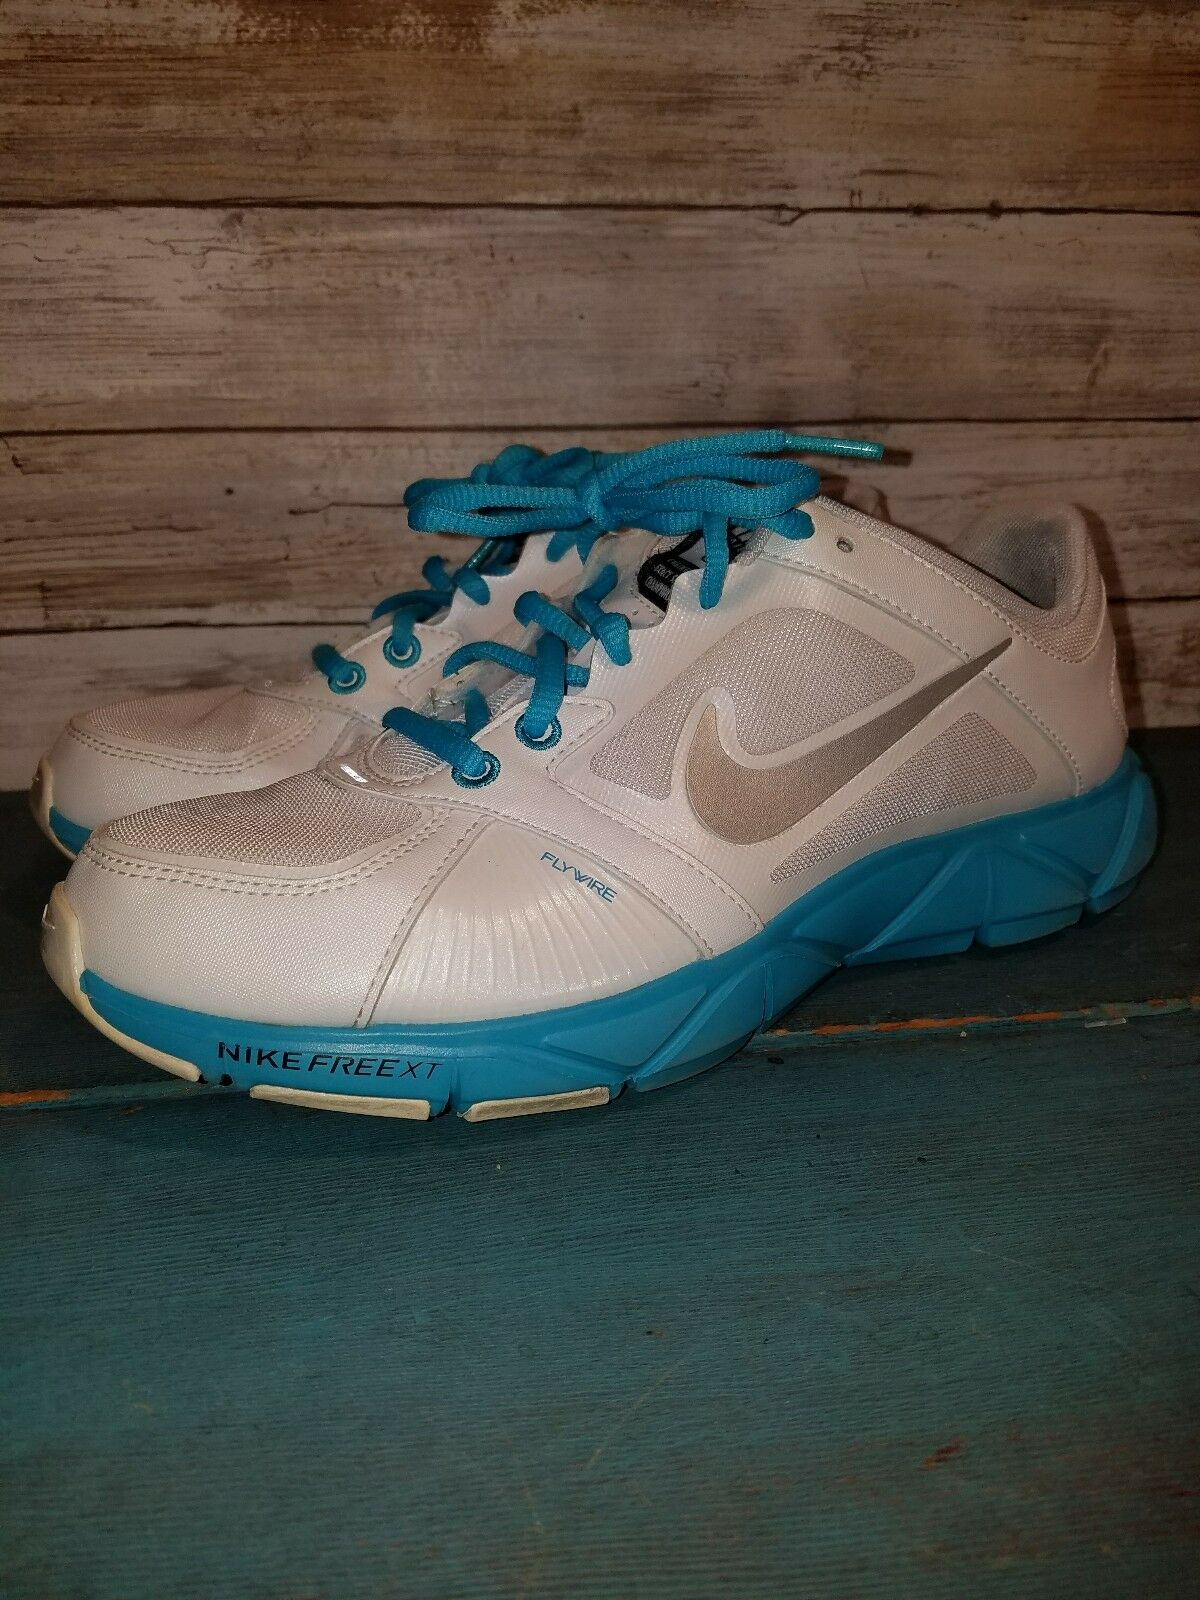 NIKE FREE XT FLYWIRE LADIES 8 TRAINING SHOES EUC